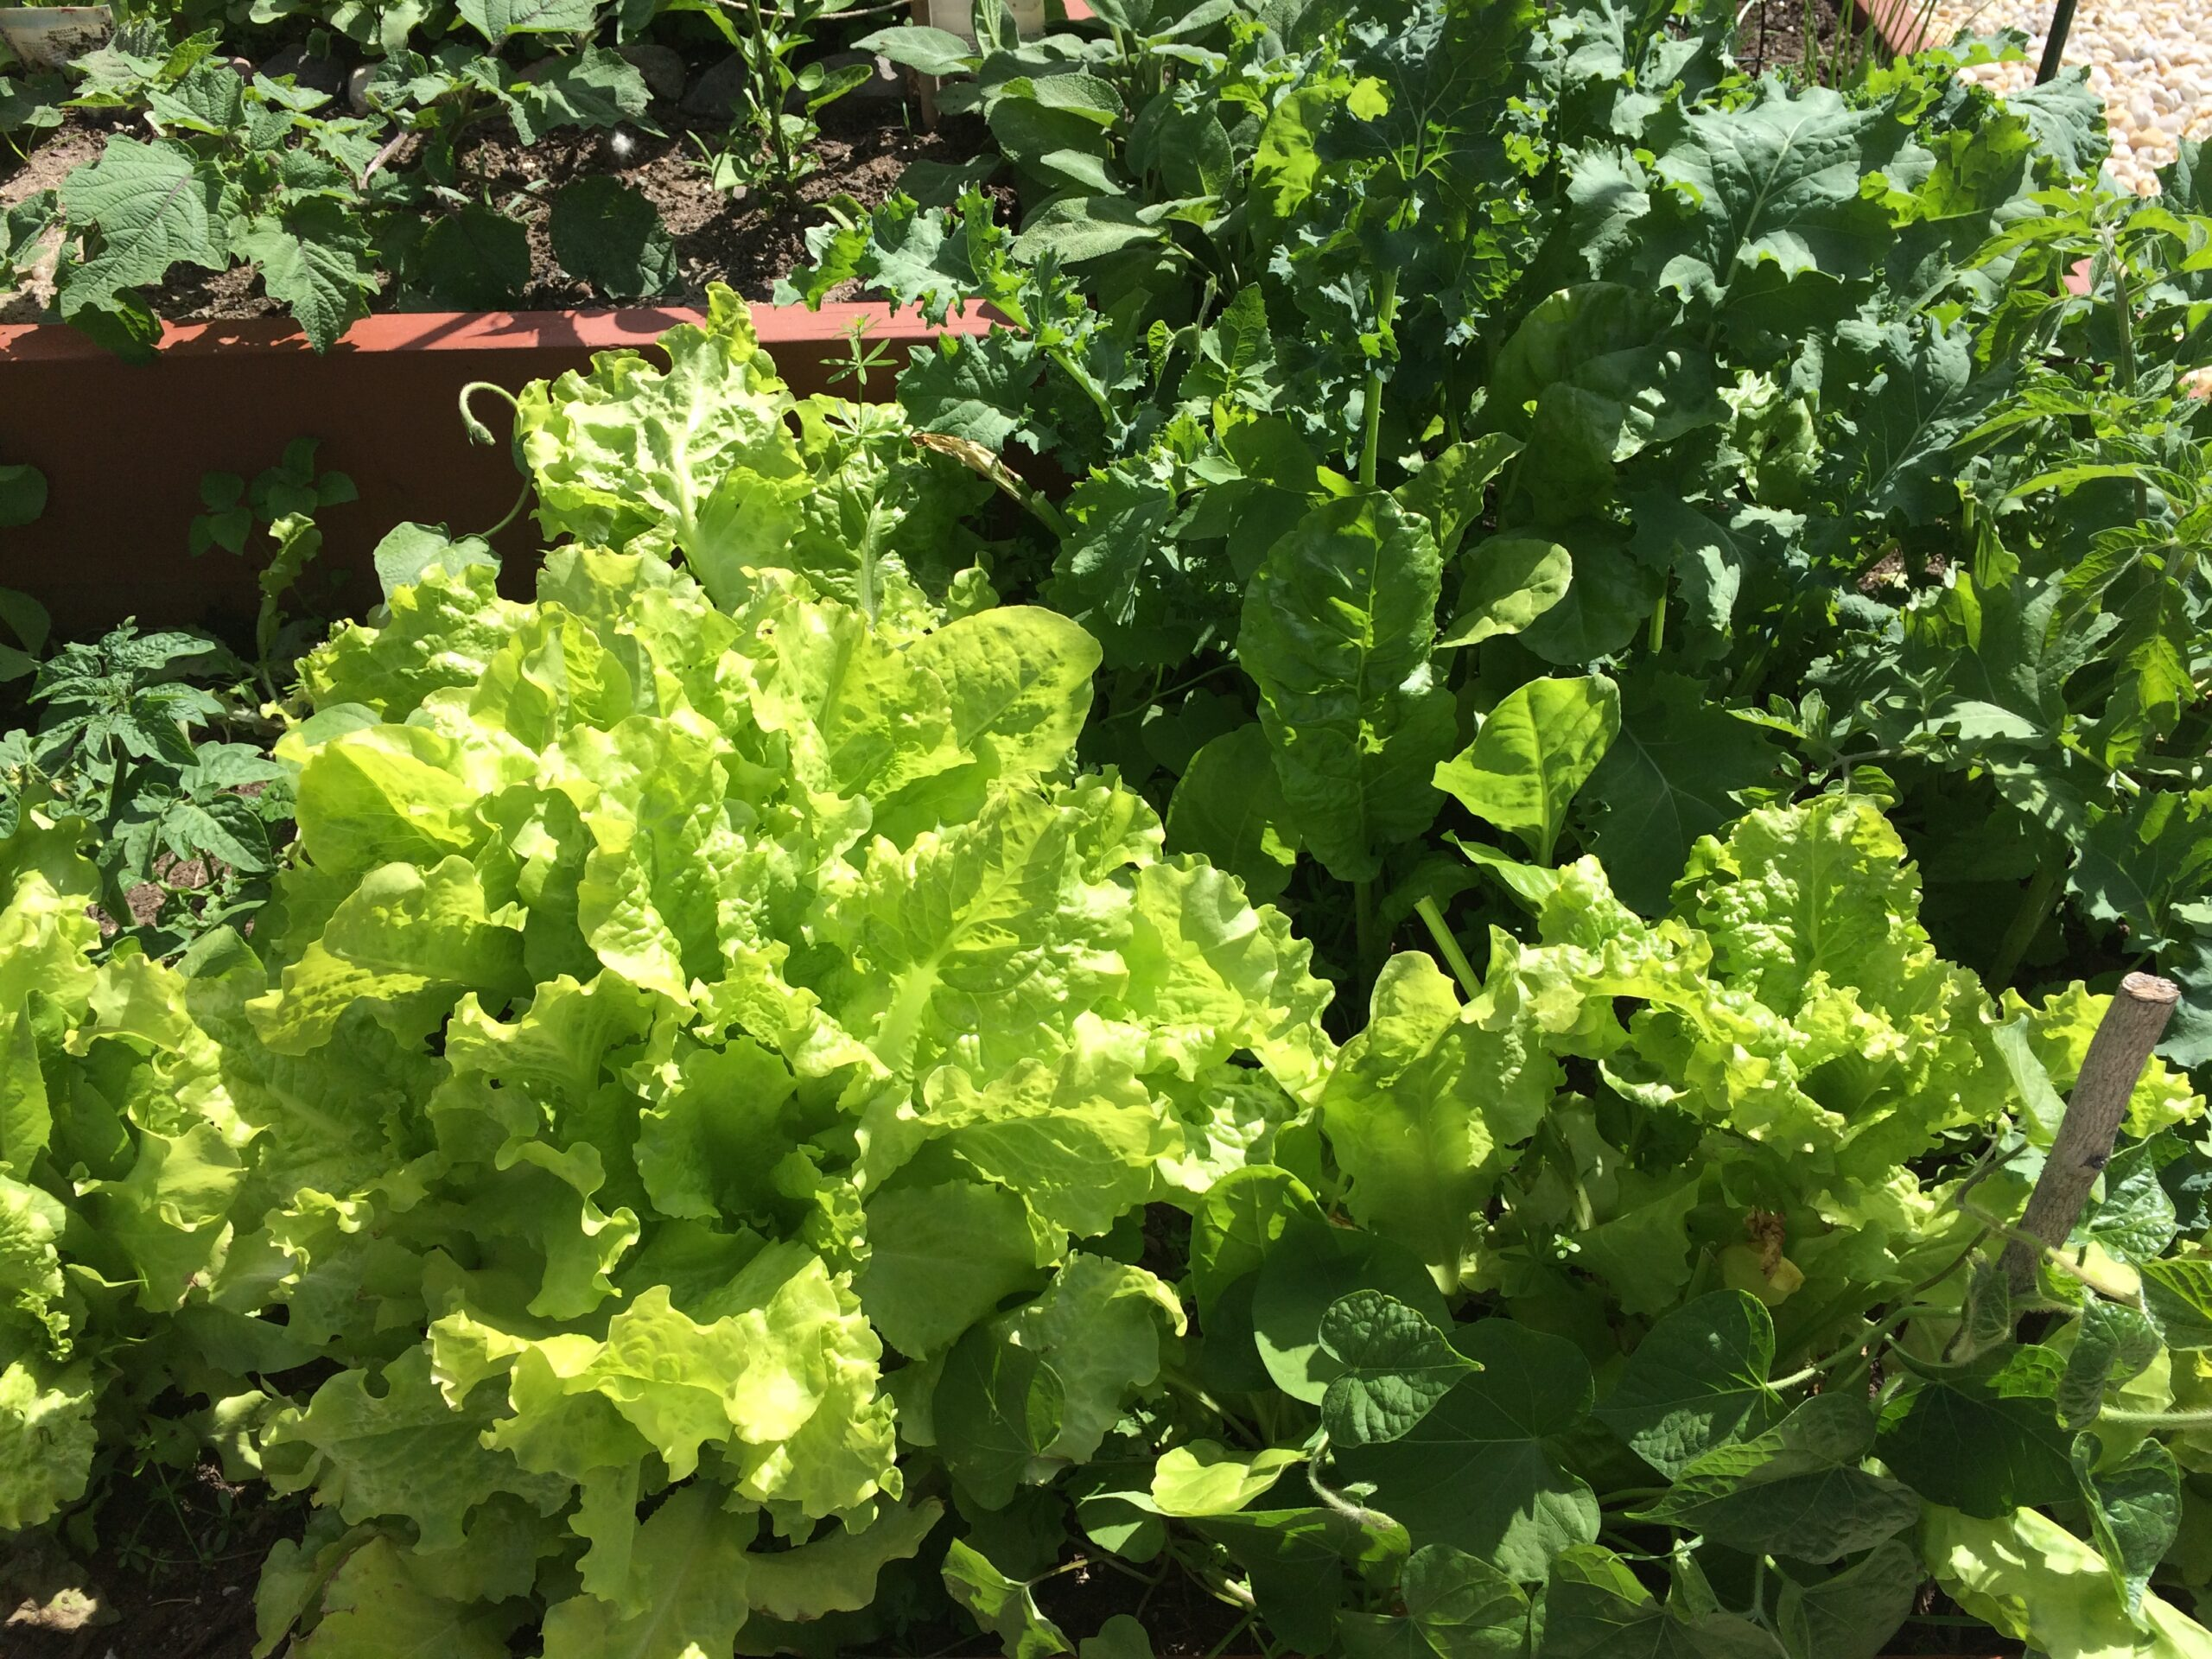 A variety of green lettuces